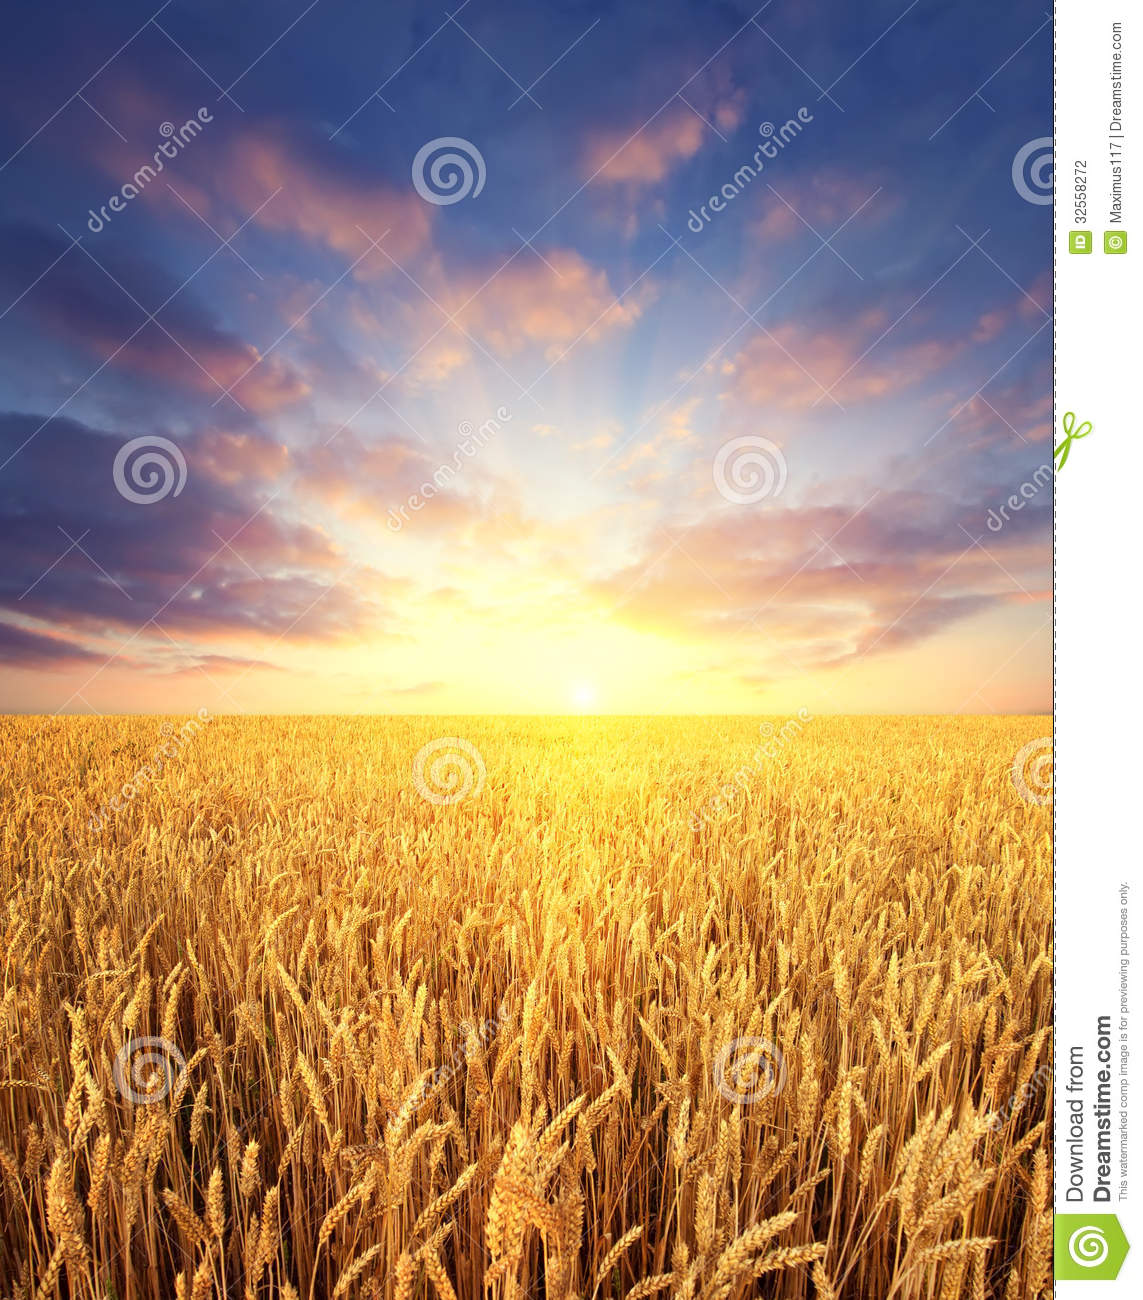 Free Wallpapers Fall Season Wheat Field And Sunrise Sky As Background Stock